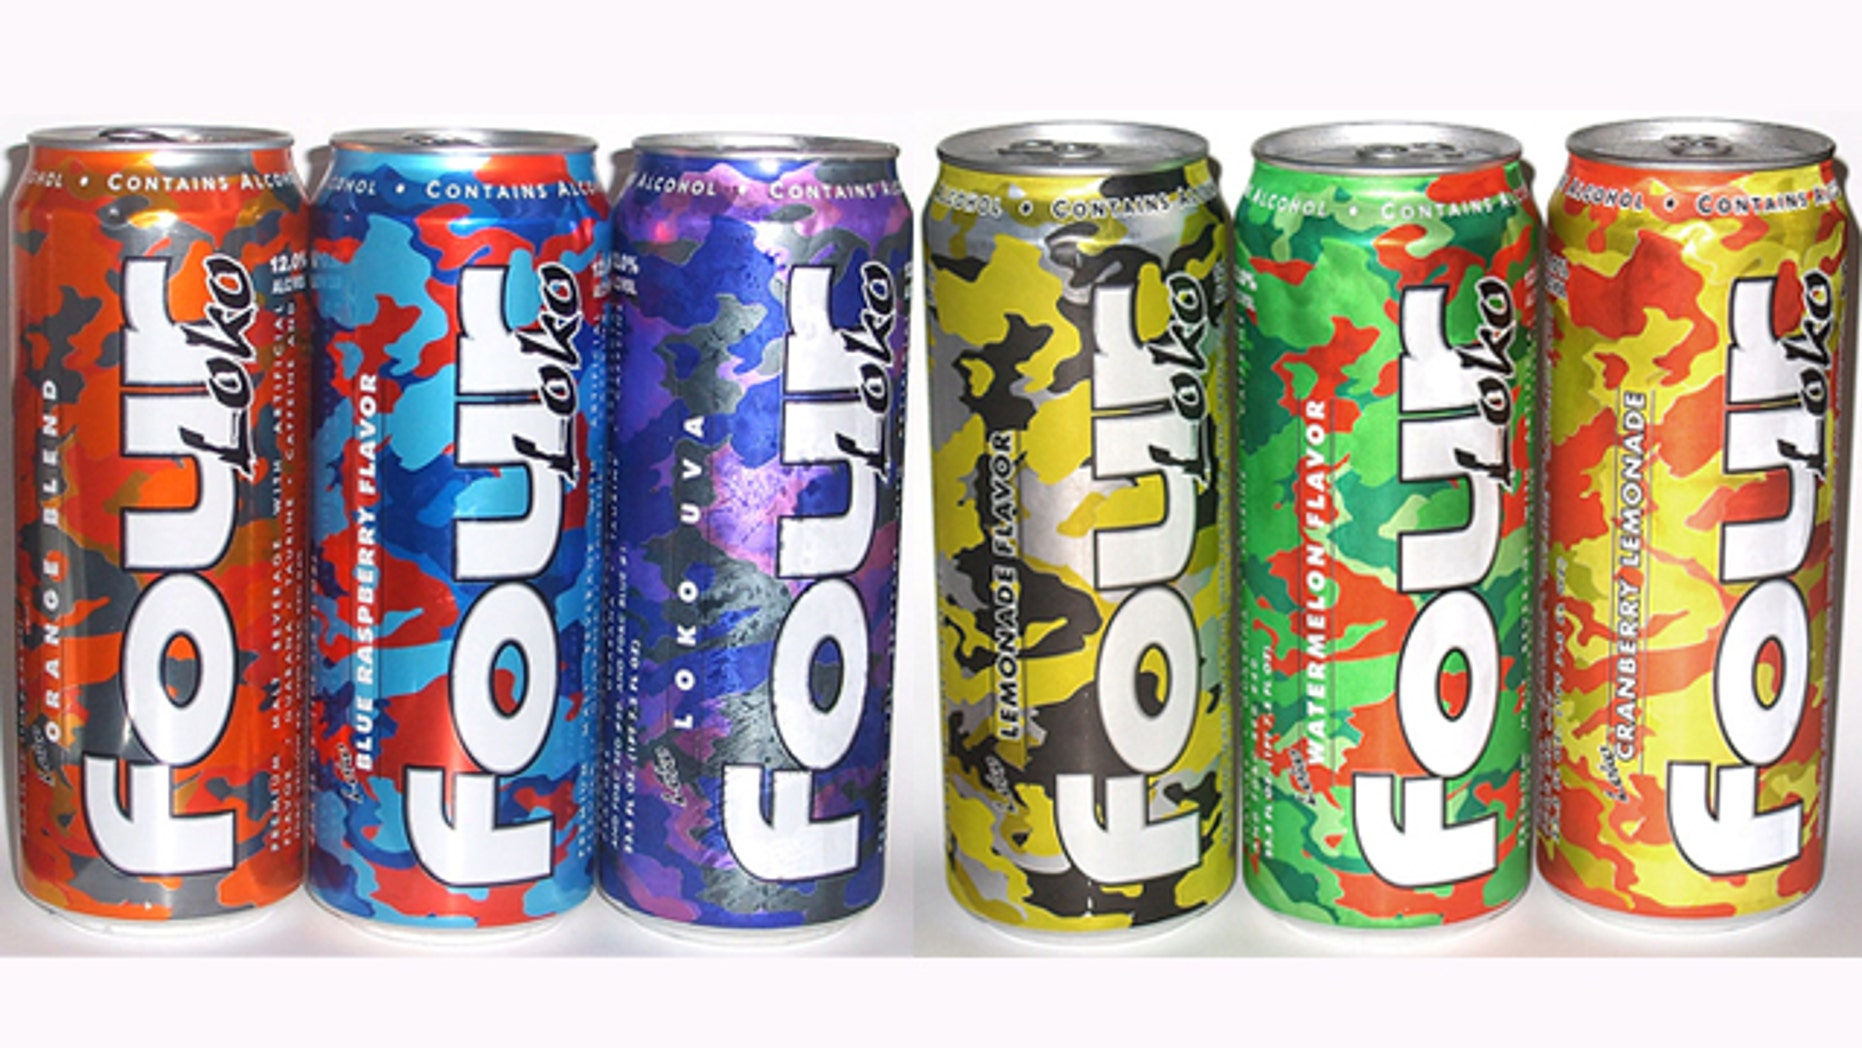 Four Loko Black-Market on the Rise | Fox News